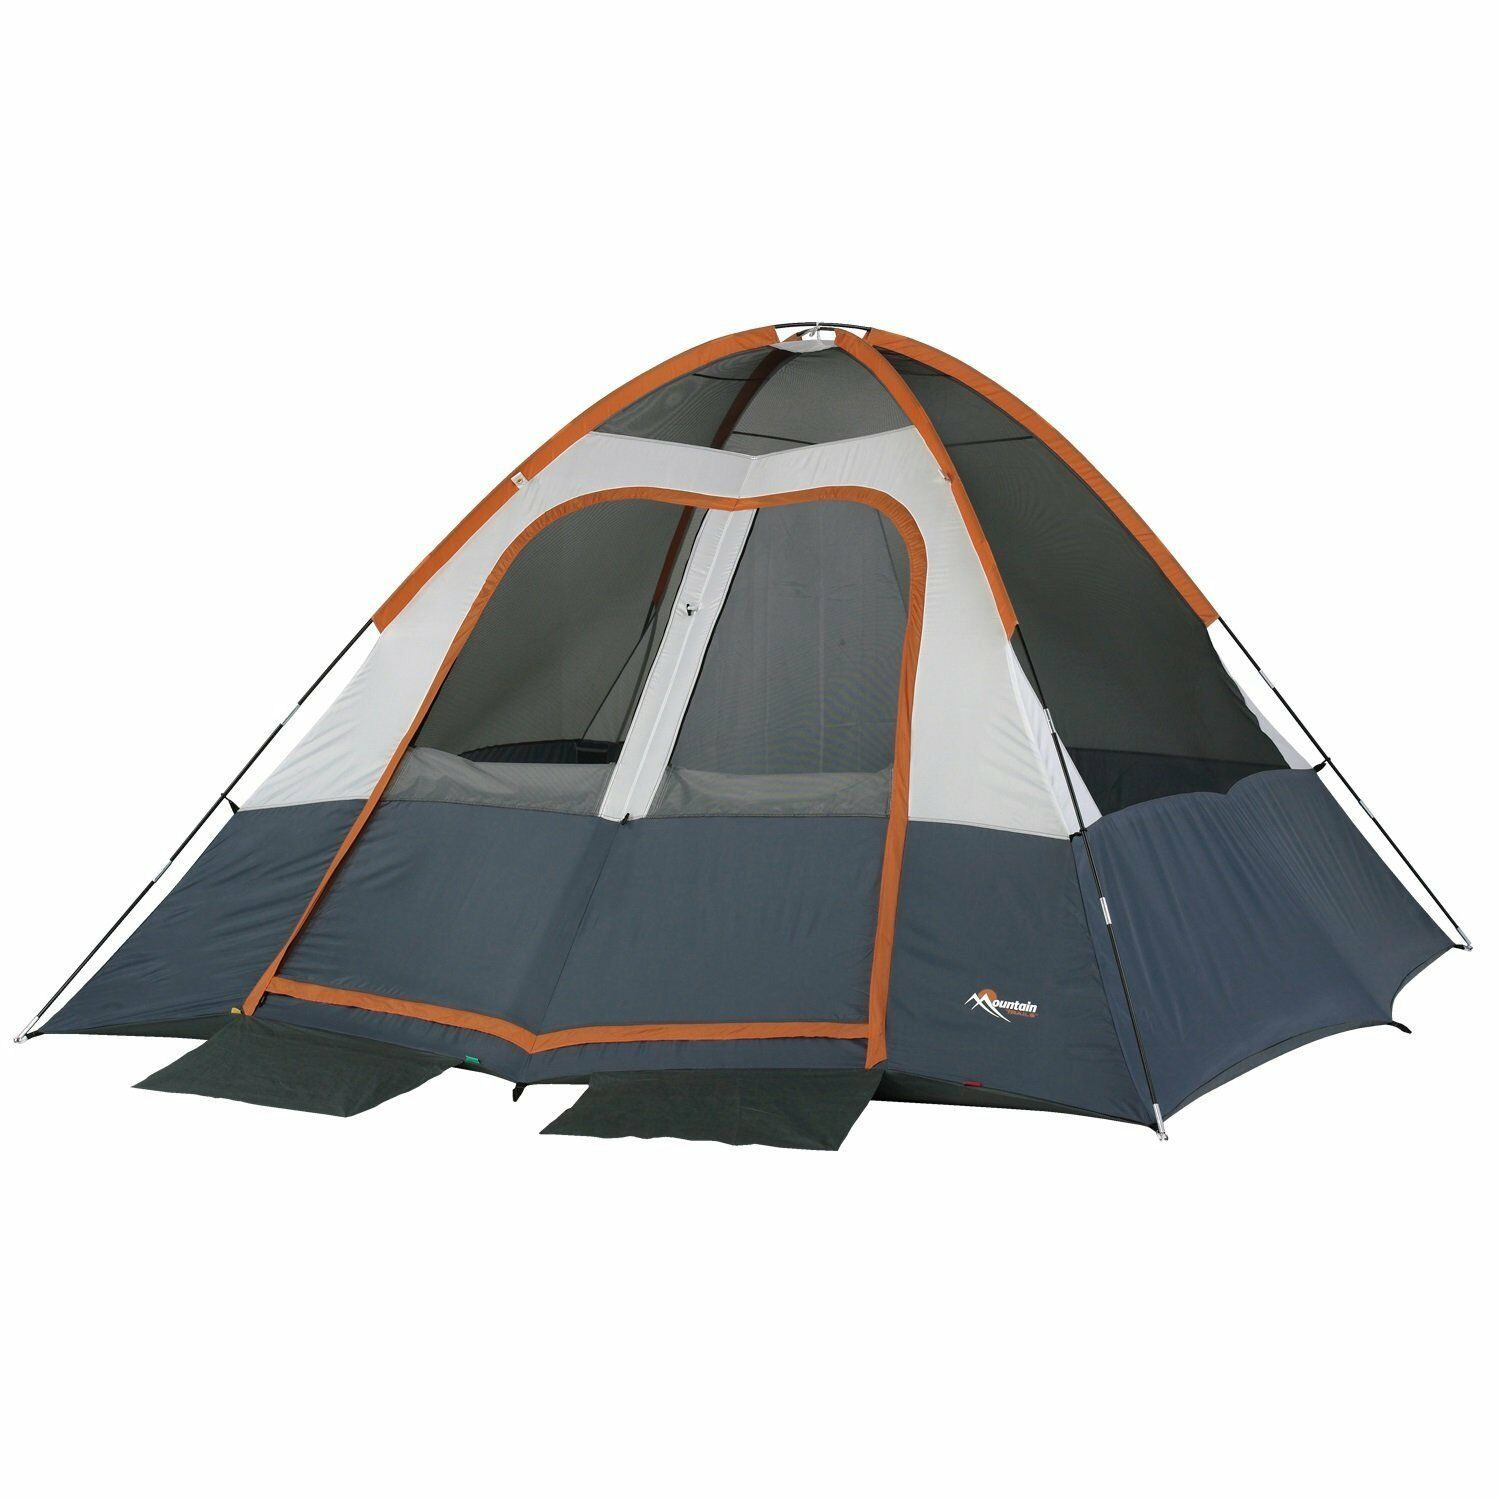 nuovo Mountain Trails Salmon River 11 by Foot 6 Person 2 Room Tent gratuito SHIPPING